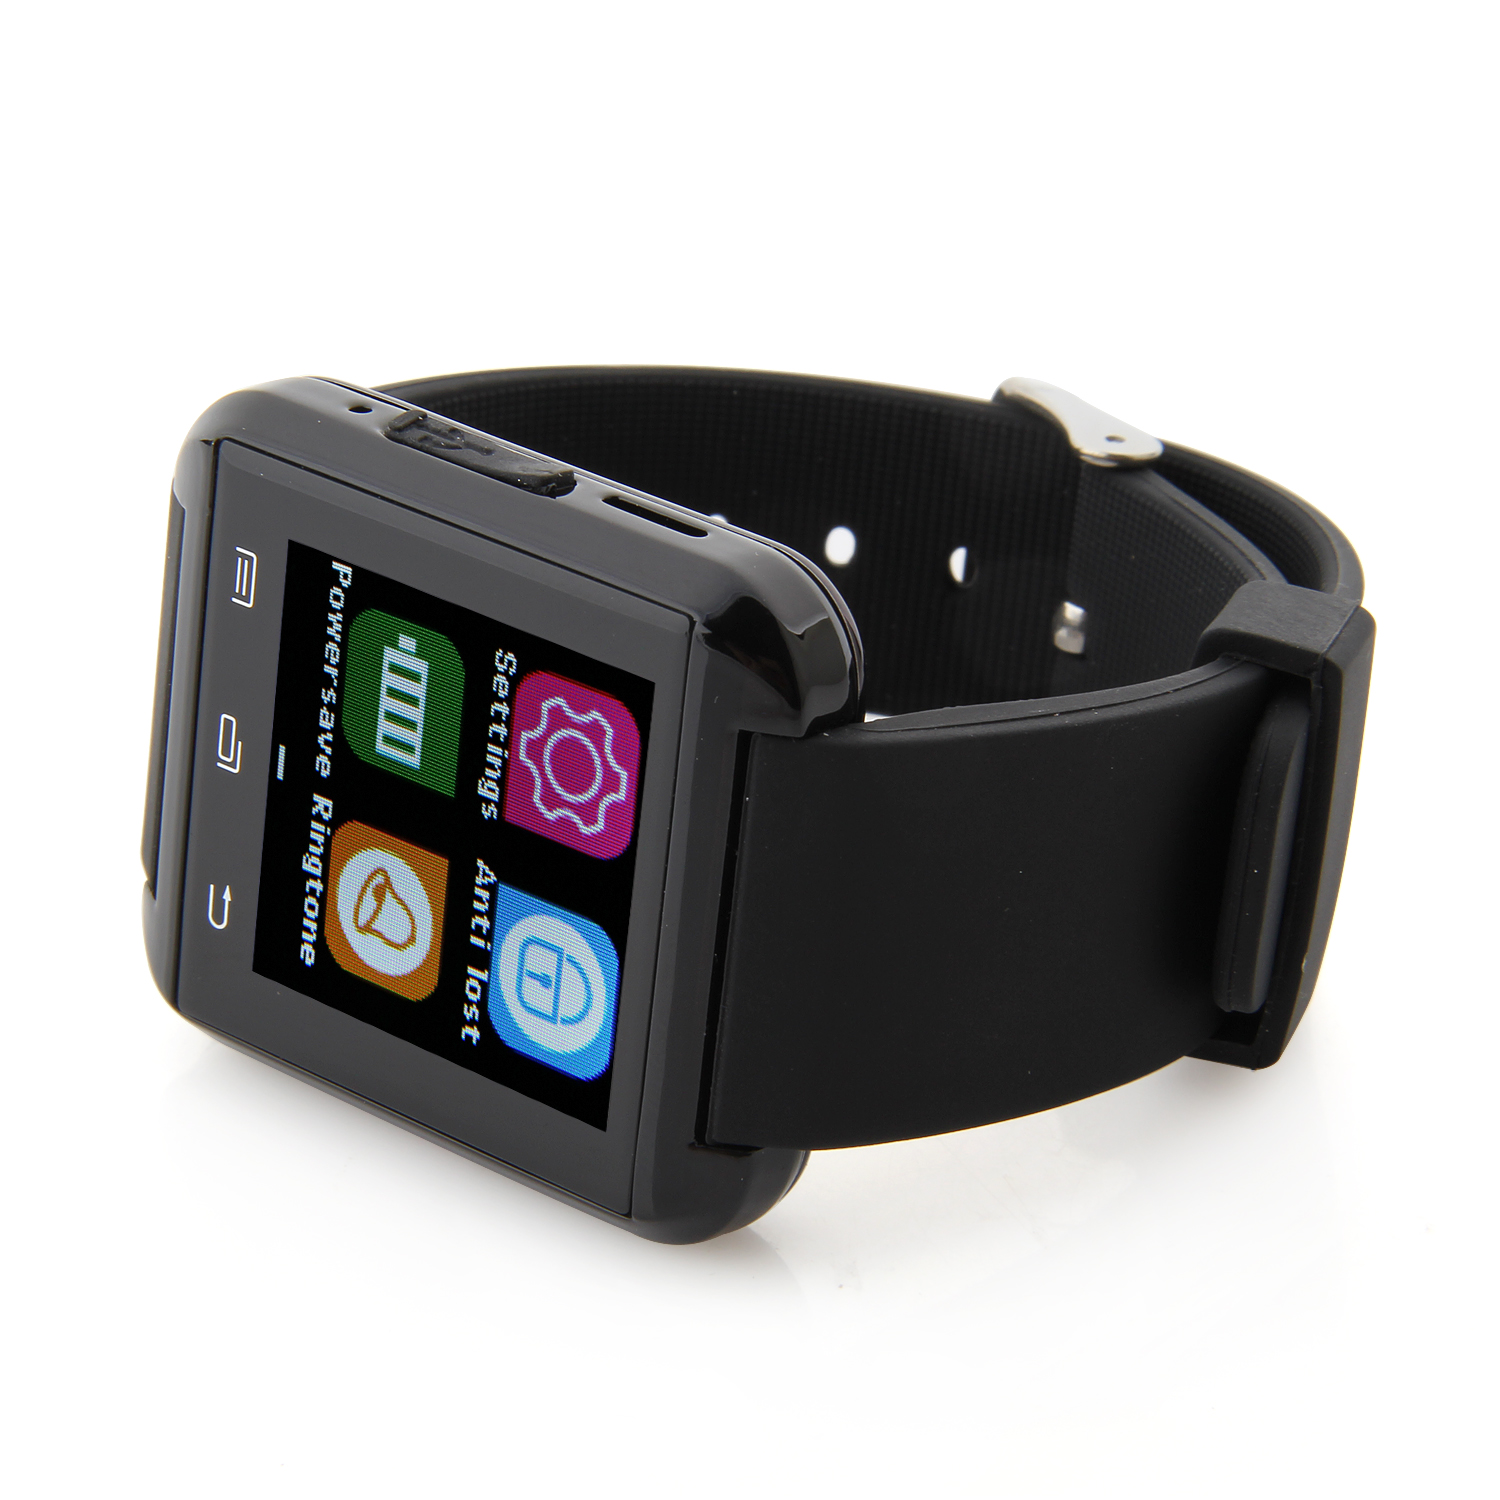 "U Watch U8 Plus Smart Bluetooth Watch 1.44"" Screen for iOS & Android Smartphones Black"